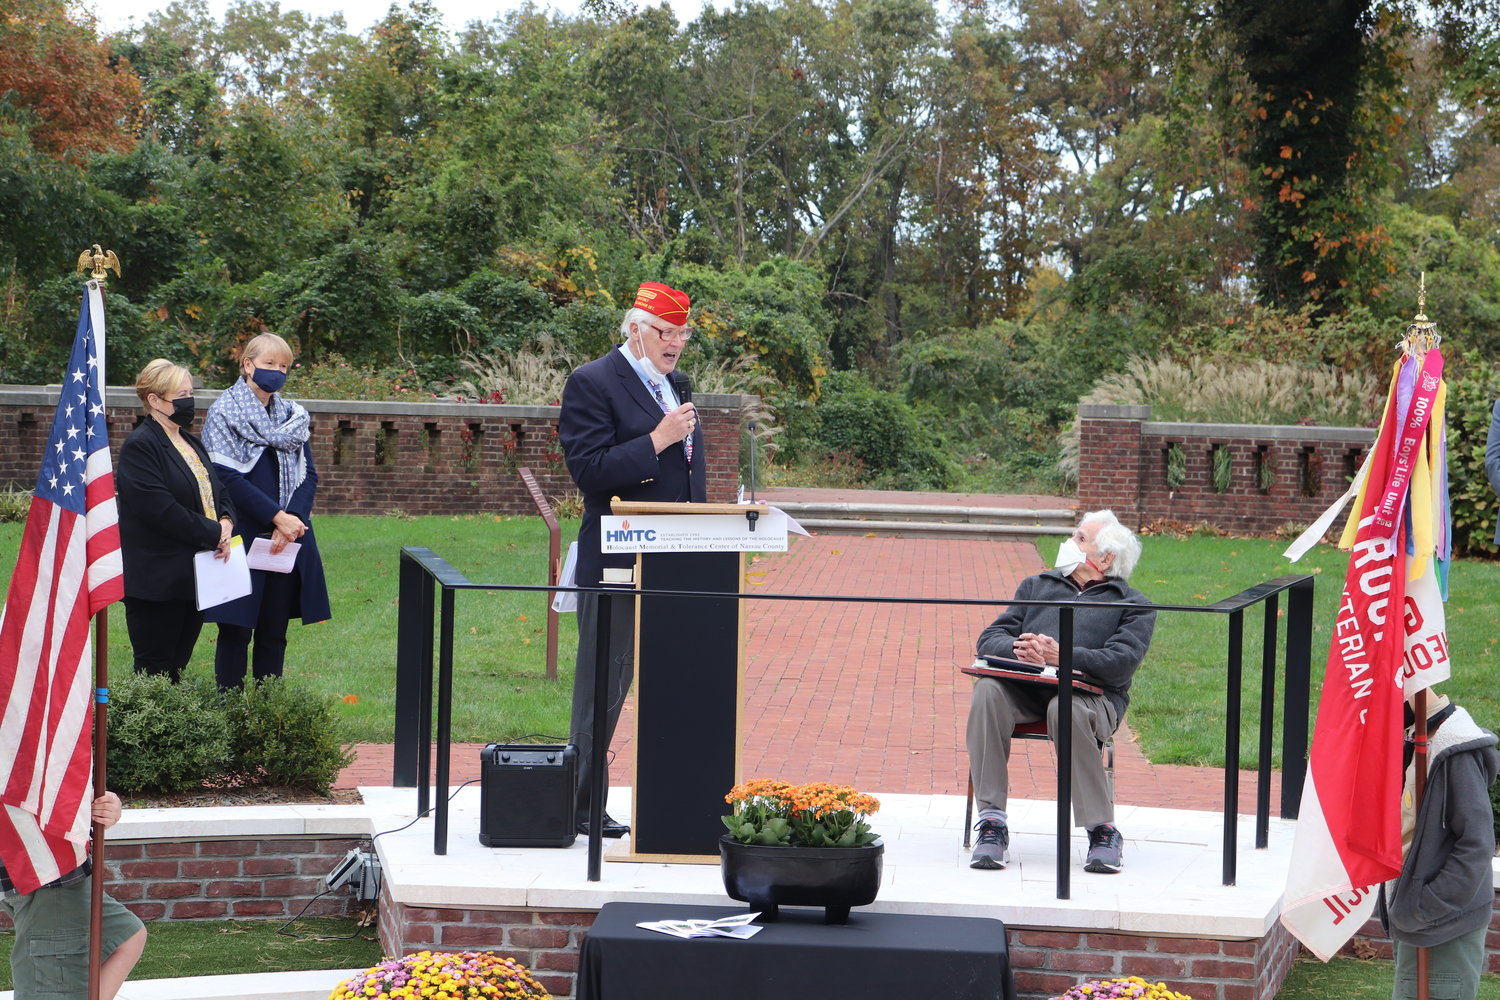 U.S. Army Maj. Fred Nielsen, left, recounts the first time meeting Robert Praver in the Children's Memorial Garden.